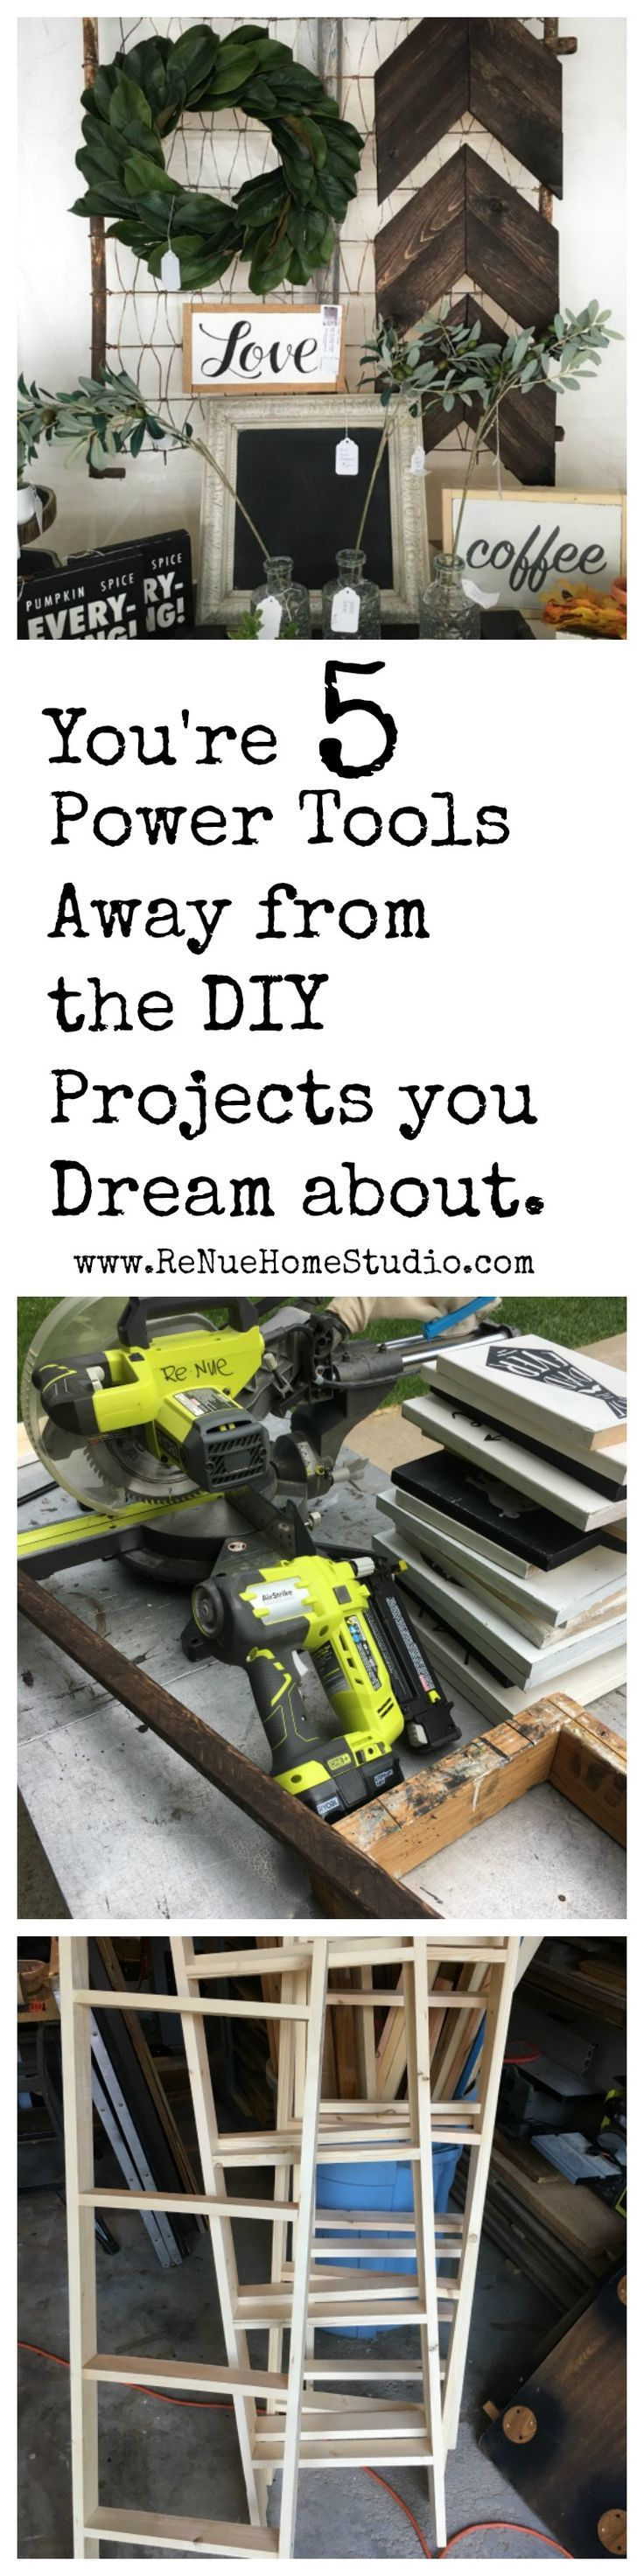 You're 5 Power Tools Away from the DIY Projects you Dream About.   This is a checklist of the Top 5 Power Tools every DIYer needs in their shop. Learn what each Power Tool can do and how you can make all the home decor items you've always wanted to make.   How To, Ryobi, Saw, Nailer, Sander, List, Tool, Tools, Garage, Studio, Farmhouse, Fixer Upper, HGTV, Shabby Chic, Tutorial, Tutorials, Home Decor, Chalk Paint, Rustic, Wax, Nail, Sand Paper, Build, Built,